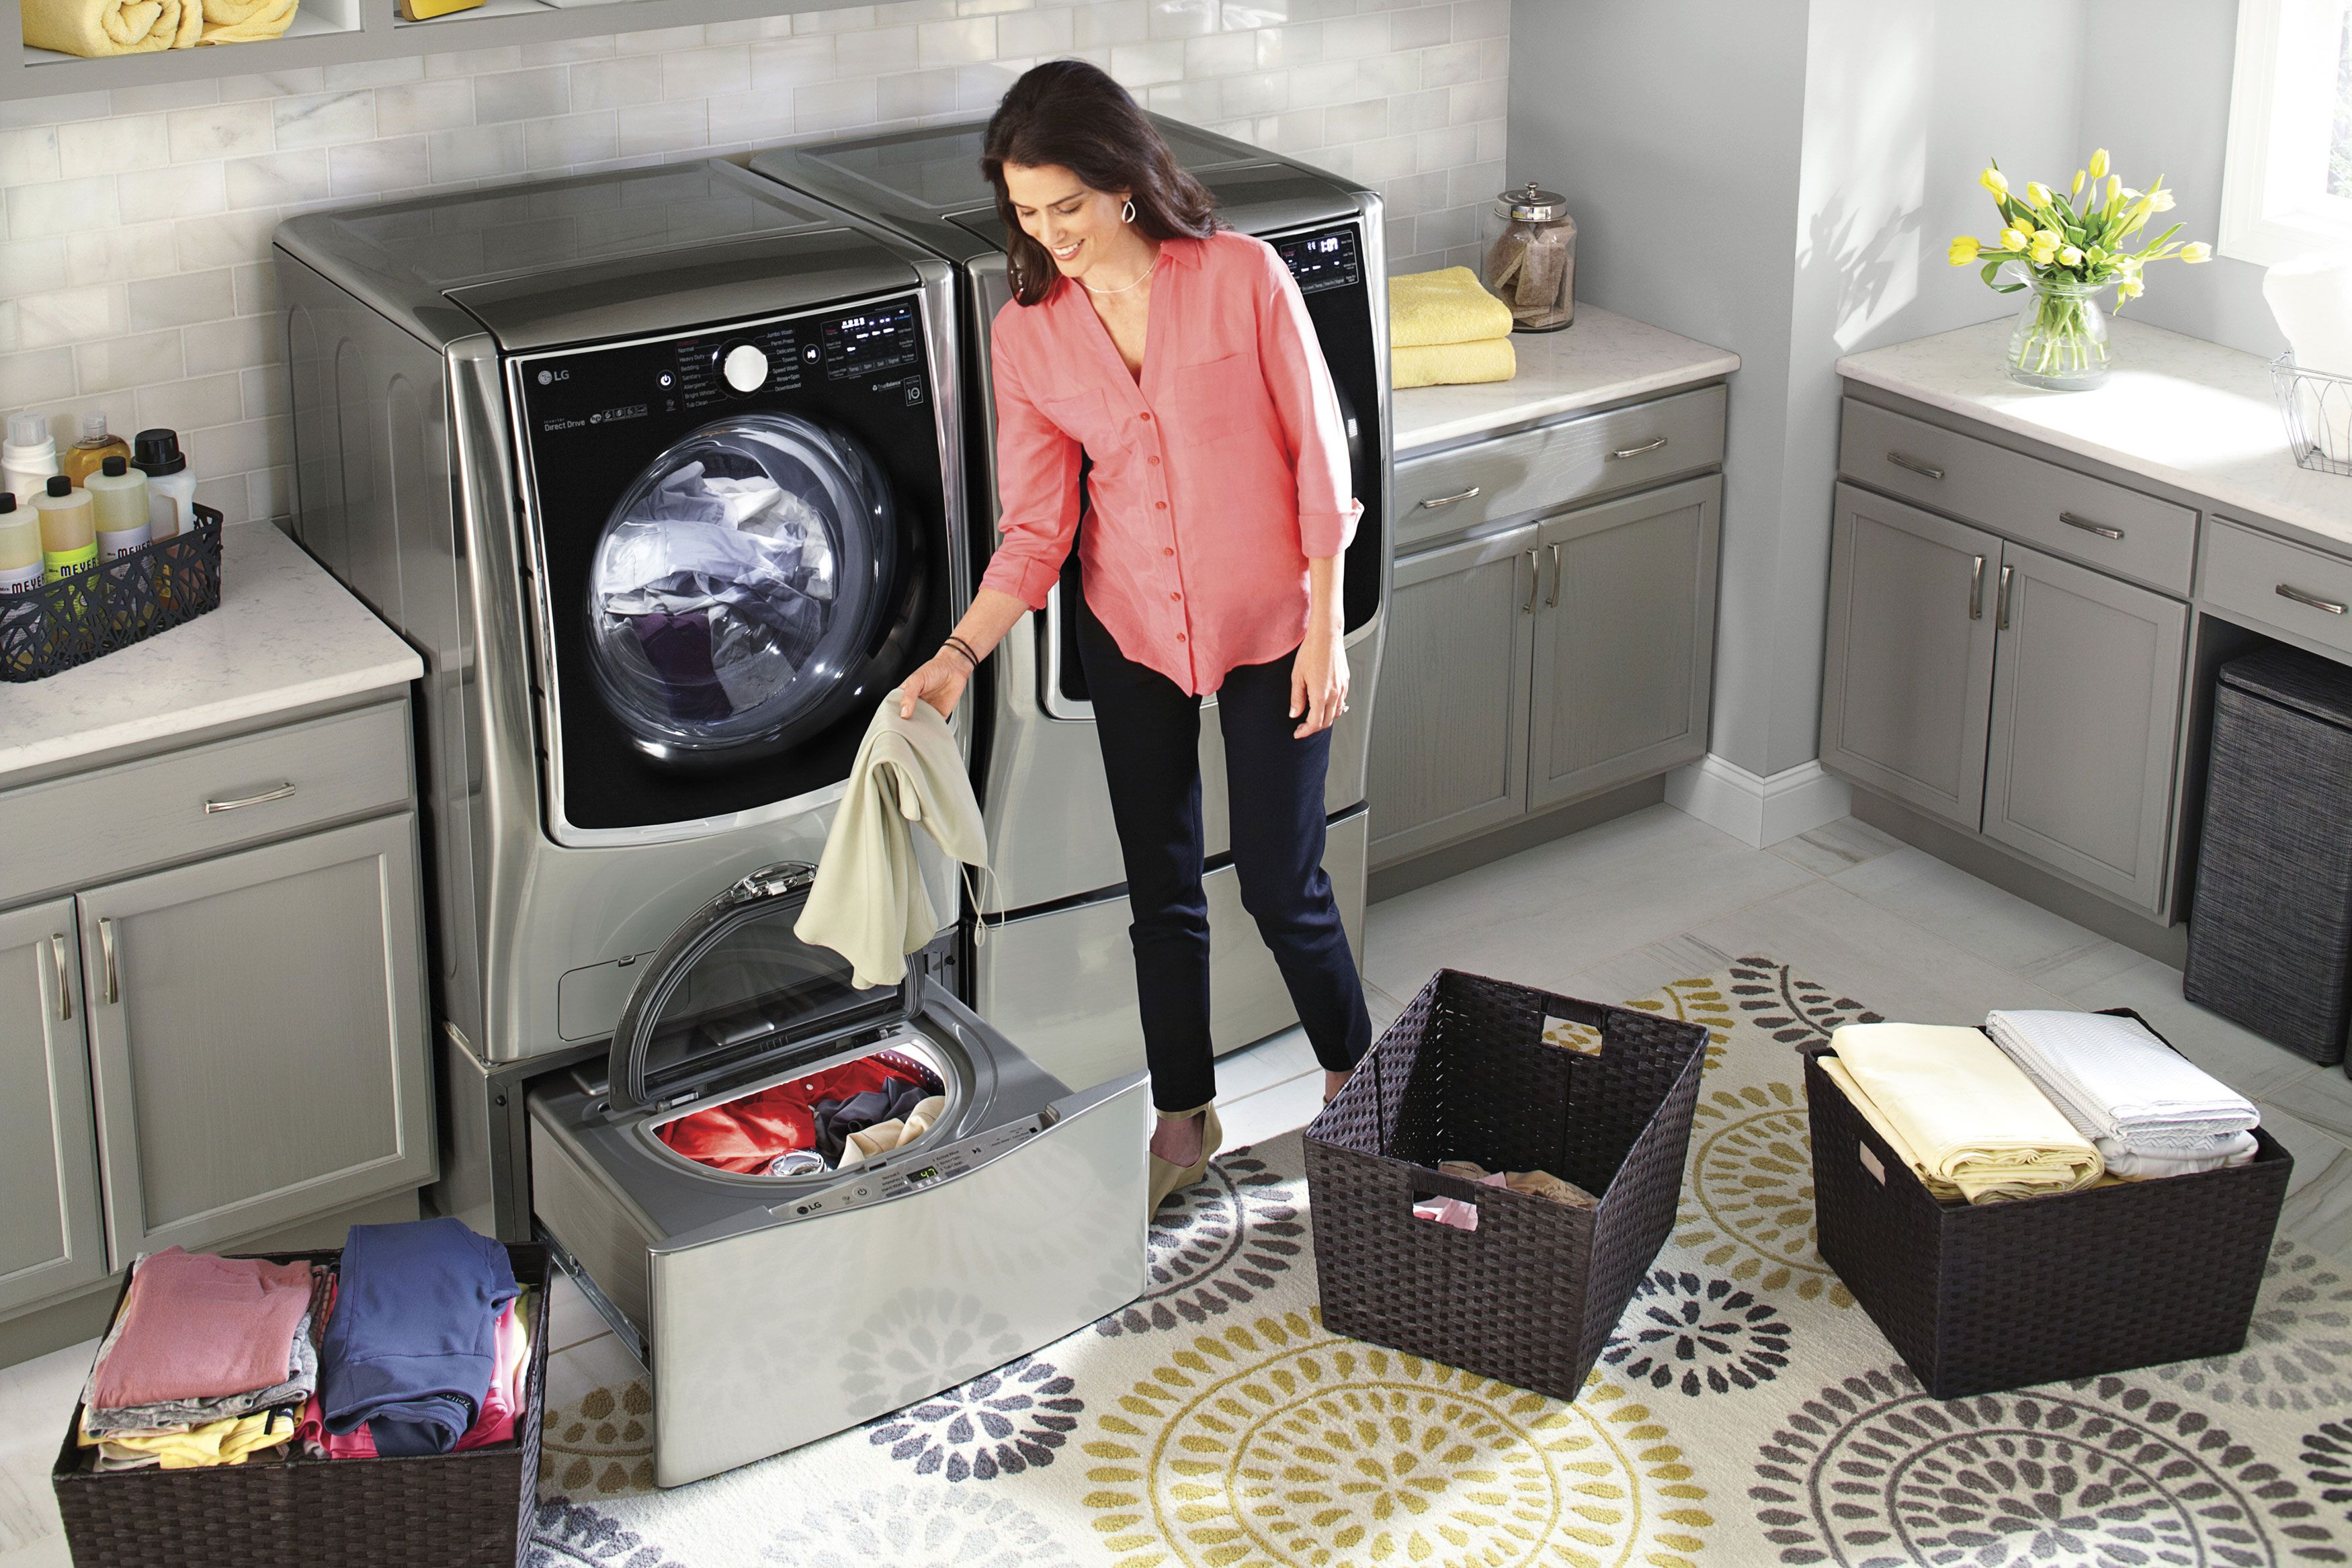 ajmadison front hov smartboost adaptive with luxcare inch perfect bin load steam pedestal minute electrolux wash fast cgi system dispenser stainsoak washer